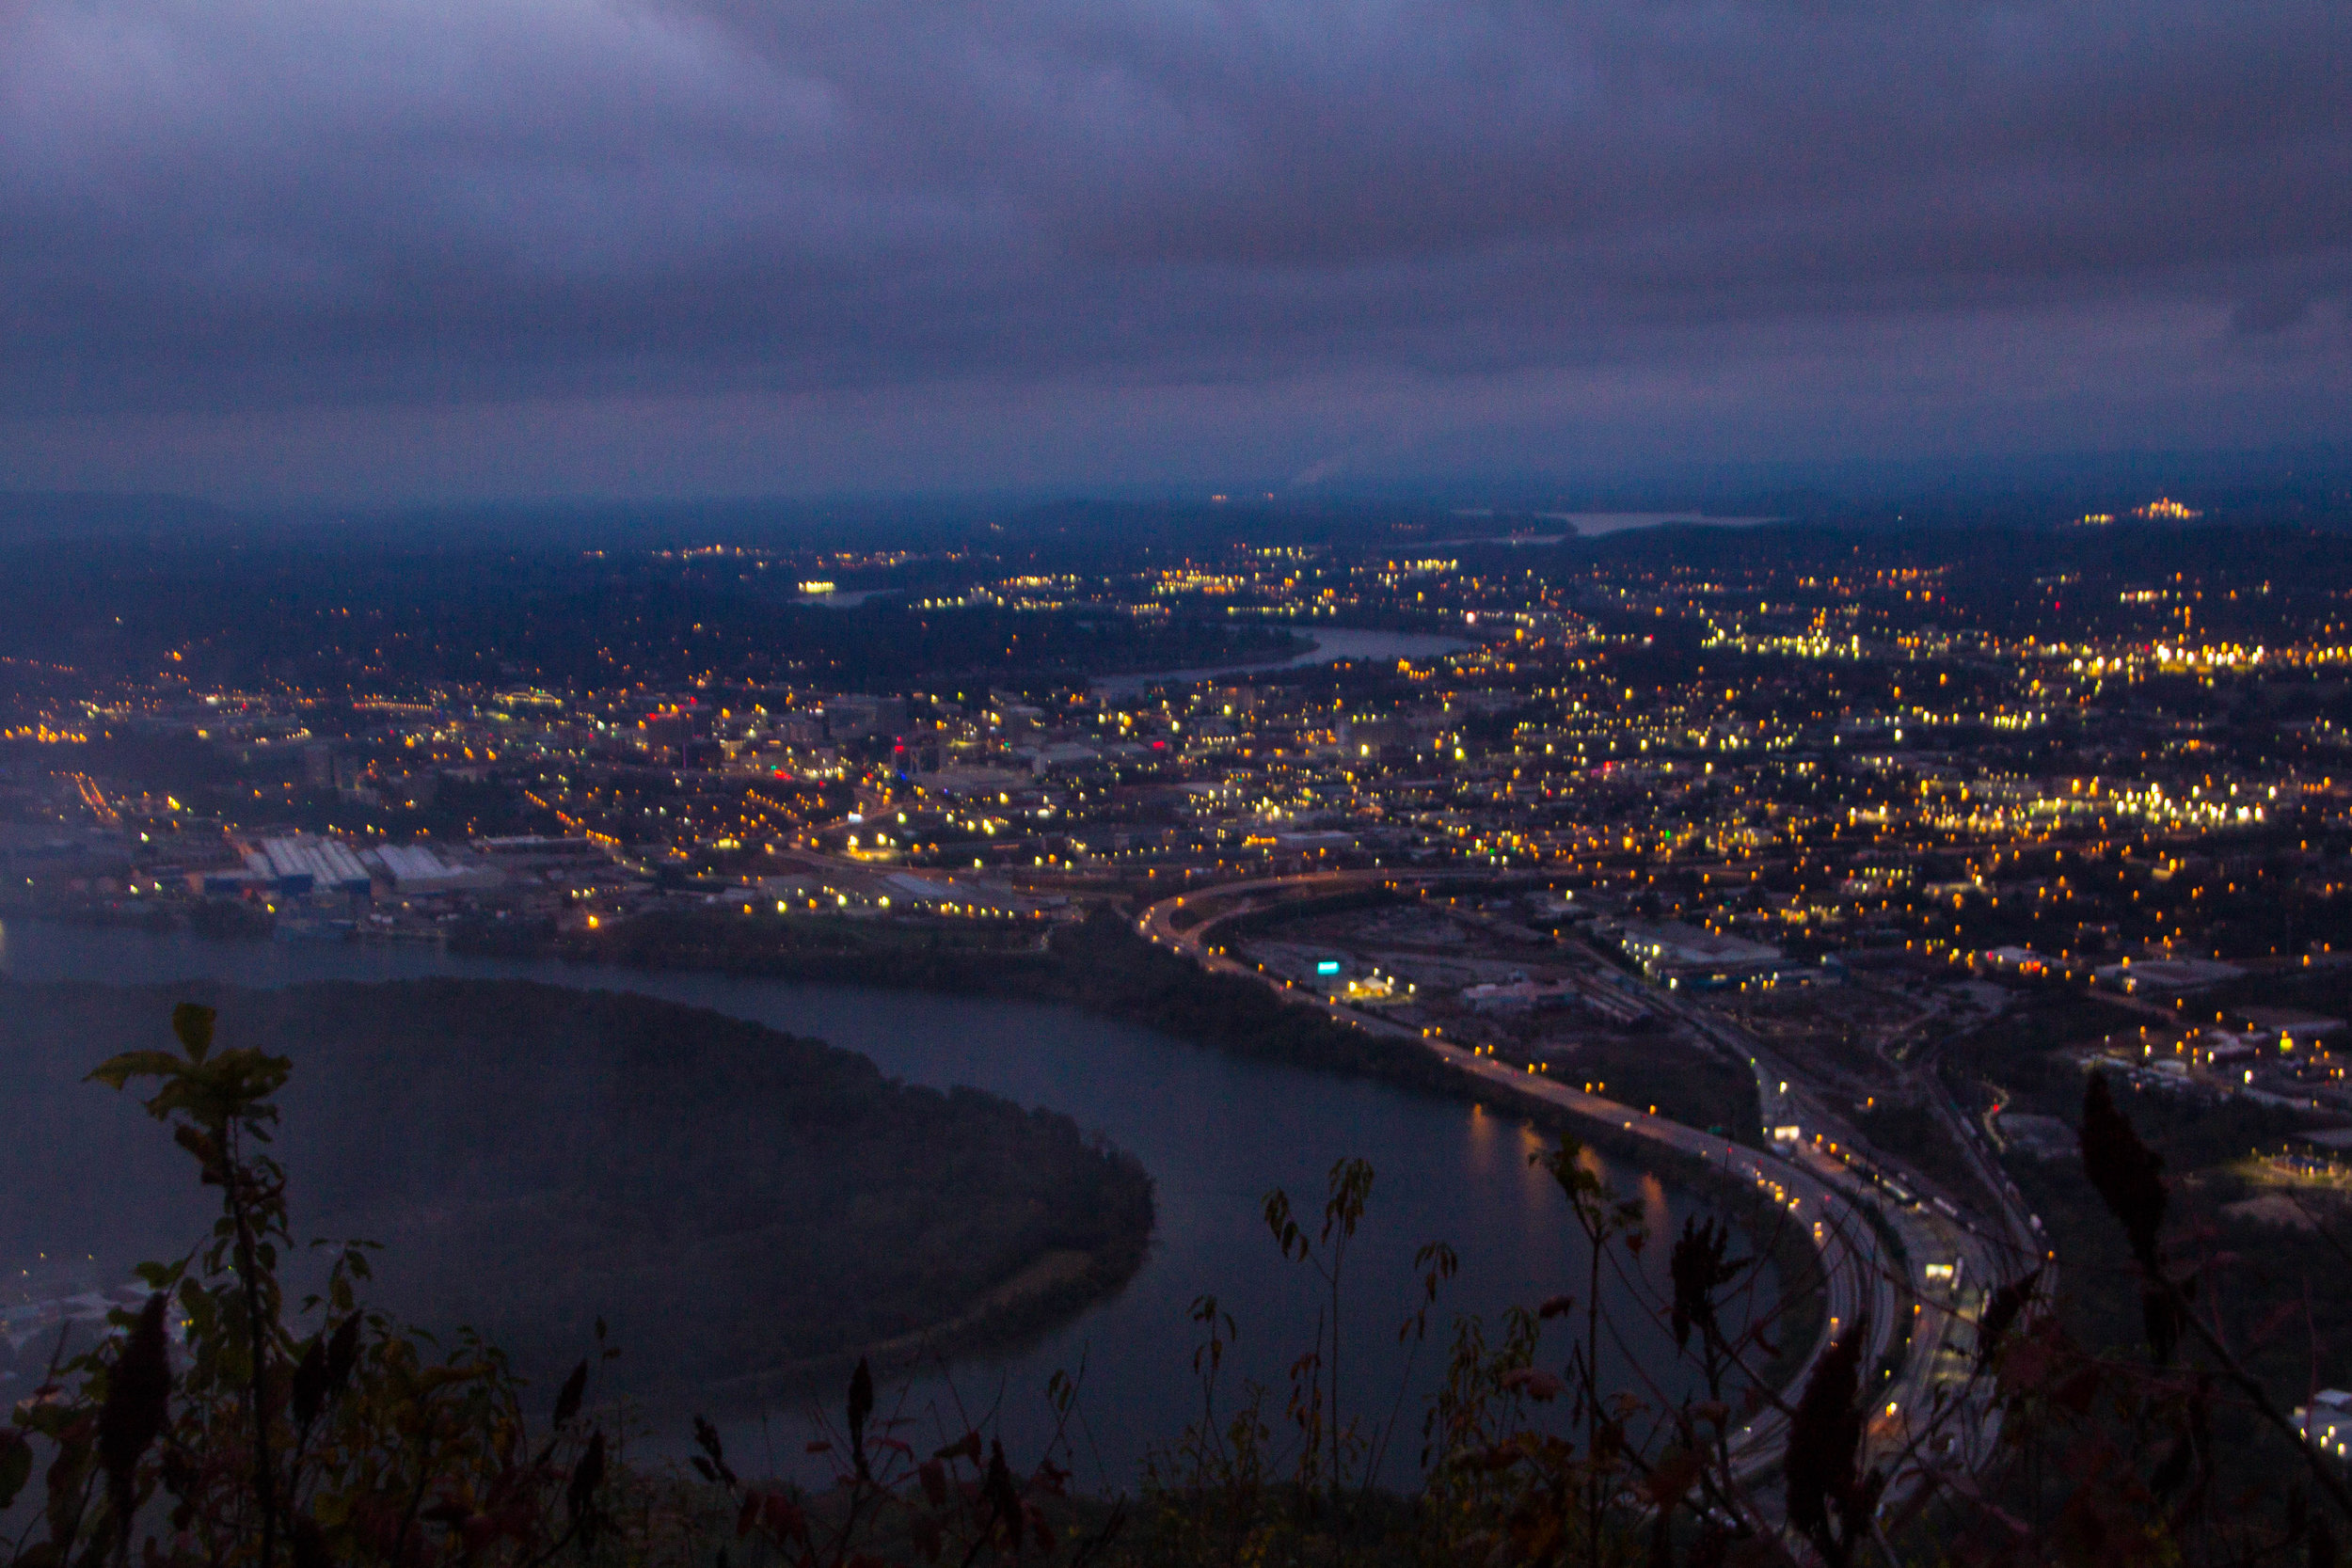 point-park-lookout-mountain-chattanooga-at-night-4.jpg